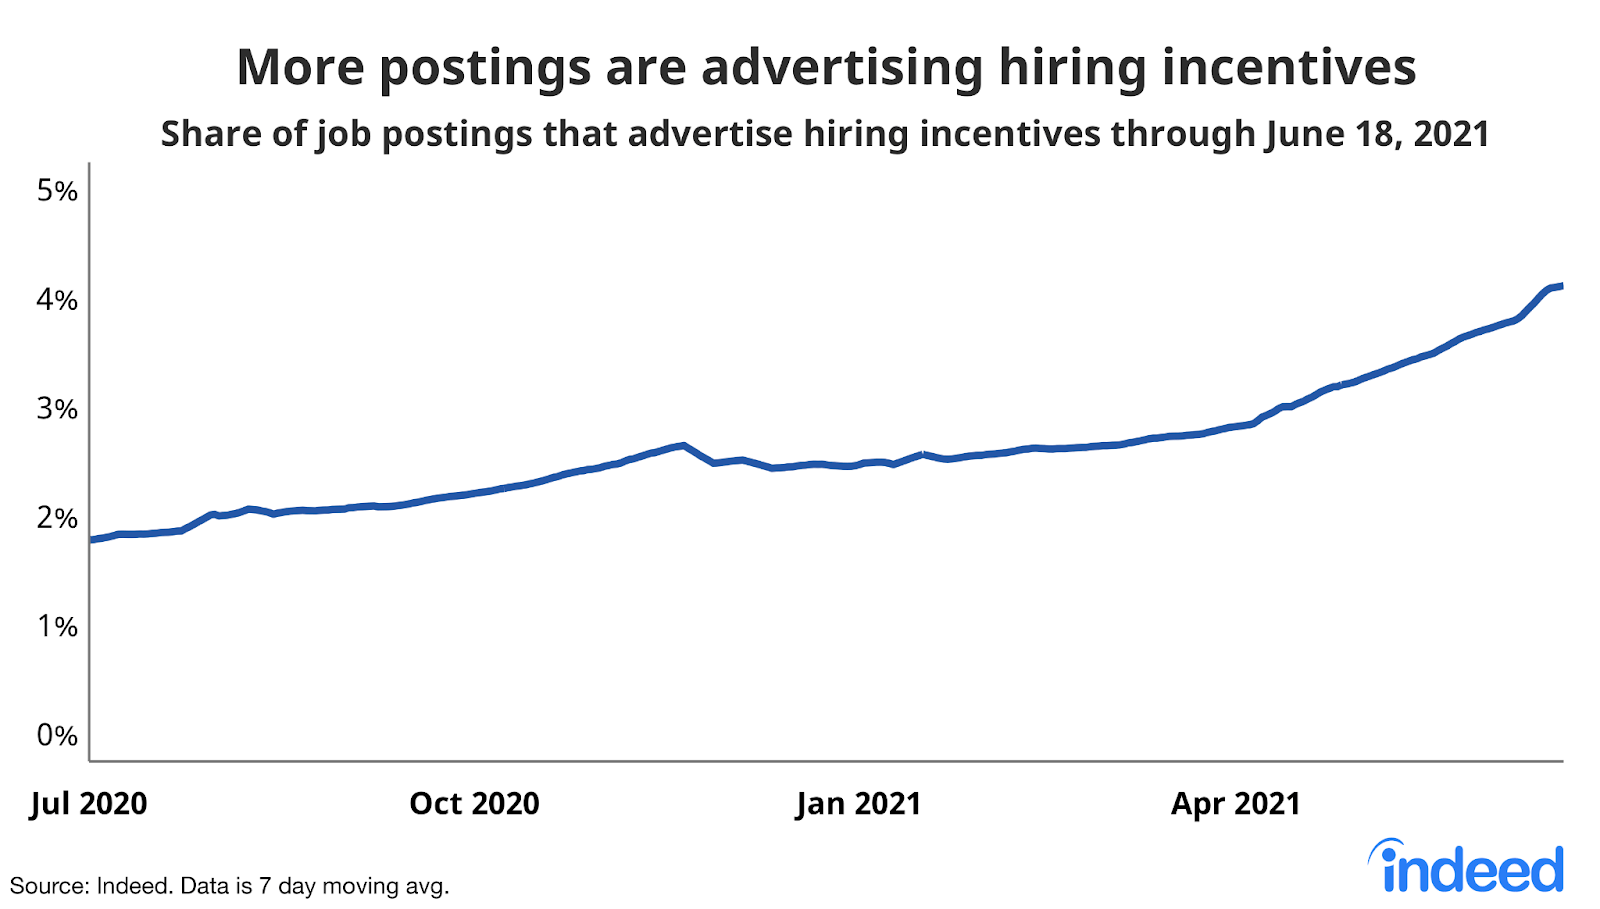 Growth in posting with incentives